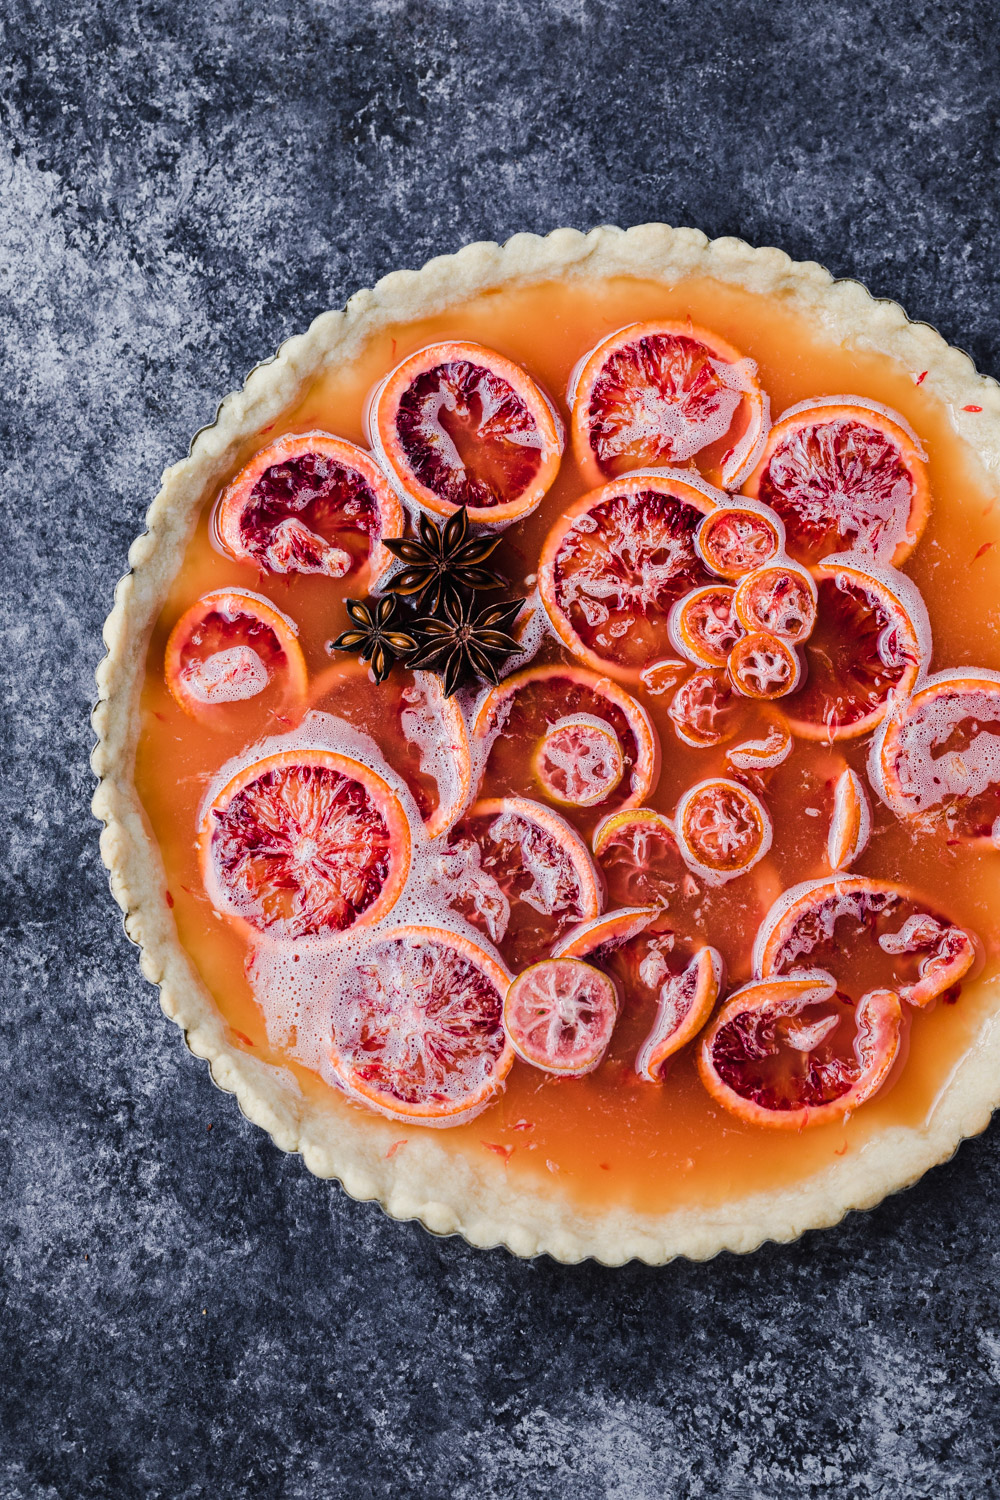 blood orange shaker tart with the addition of star anise, pre-oven